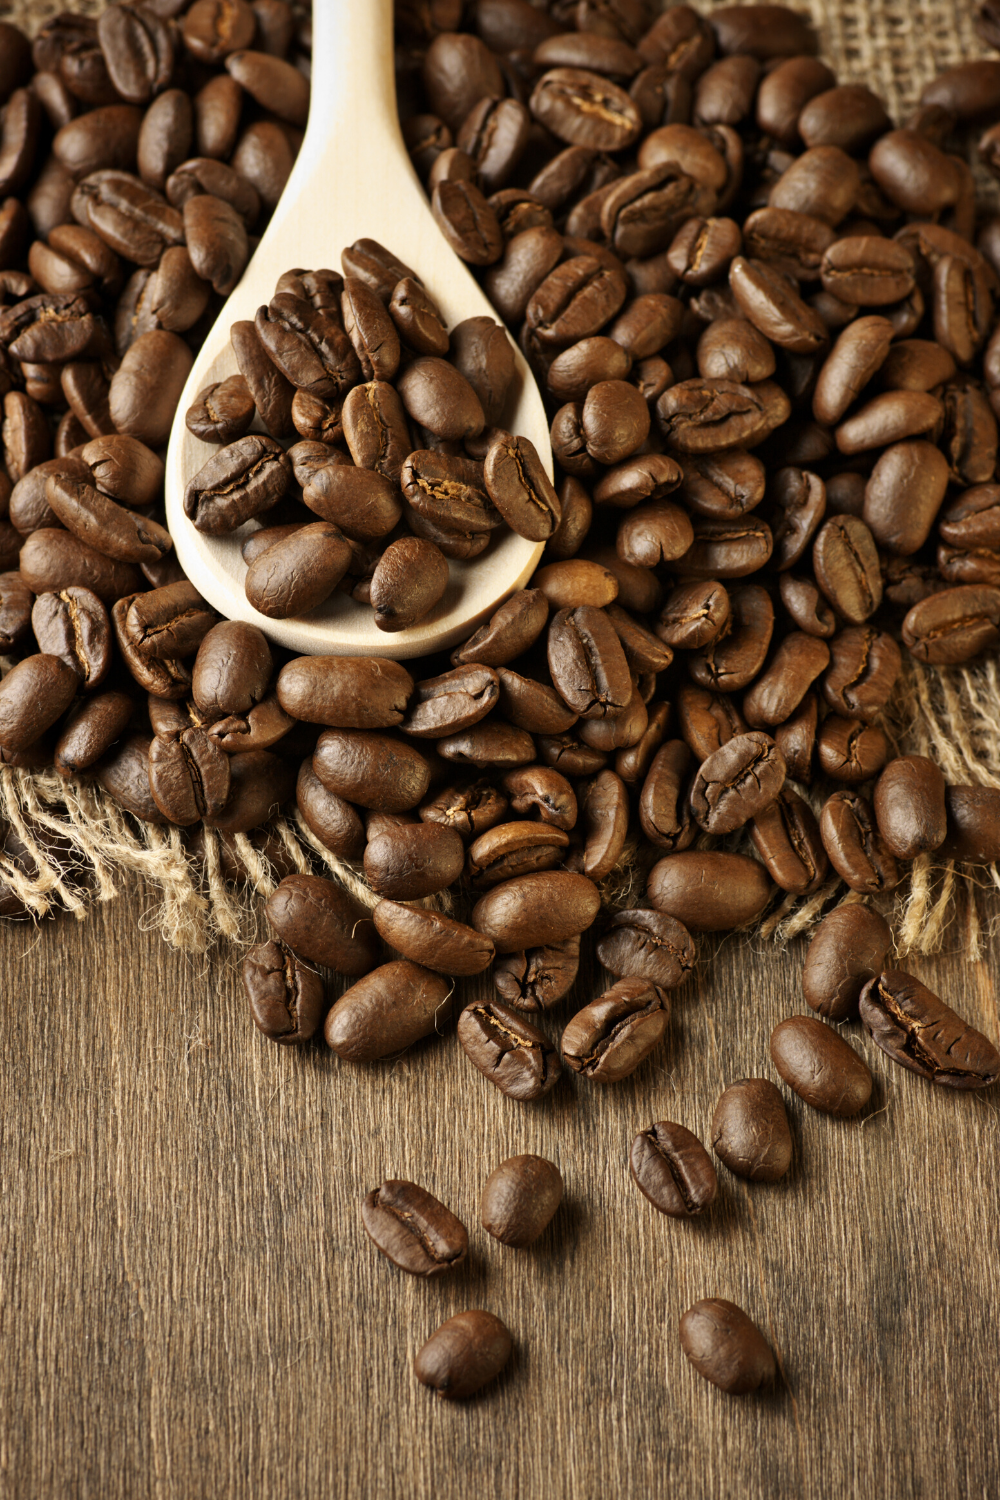 coffee beans on a wooden surface with a wooden spoon